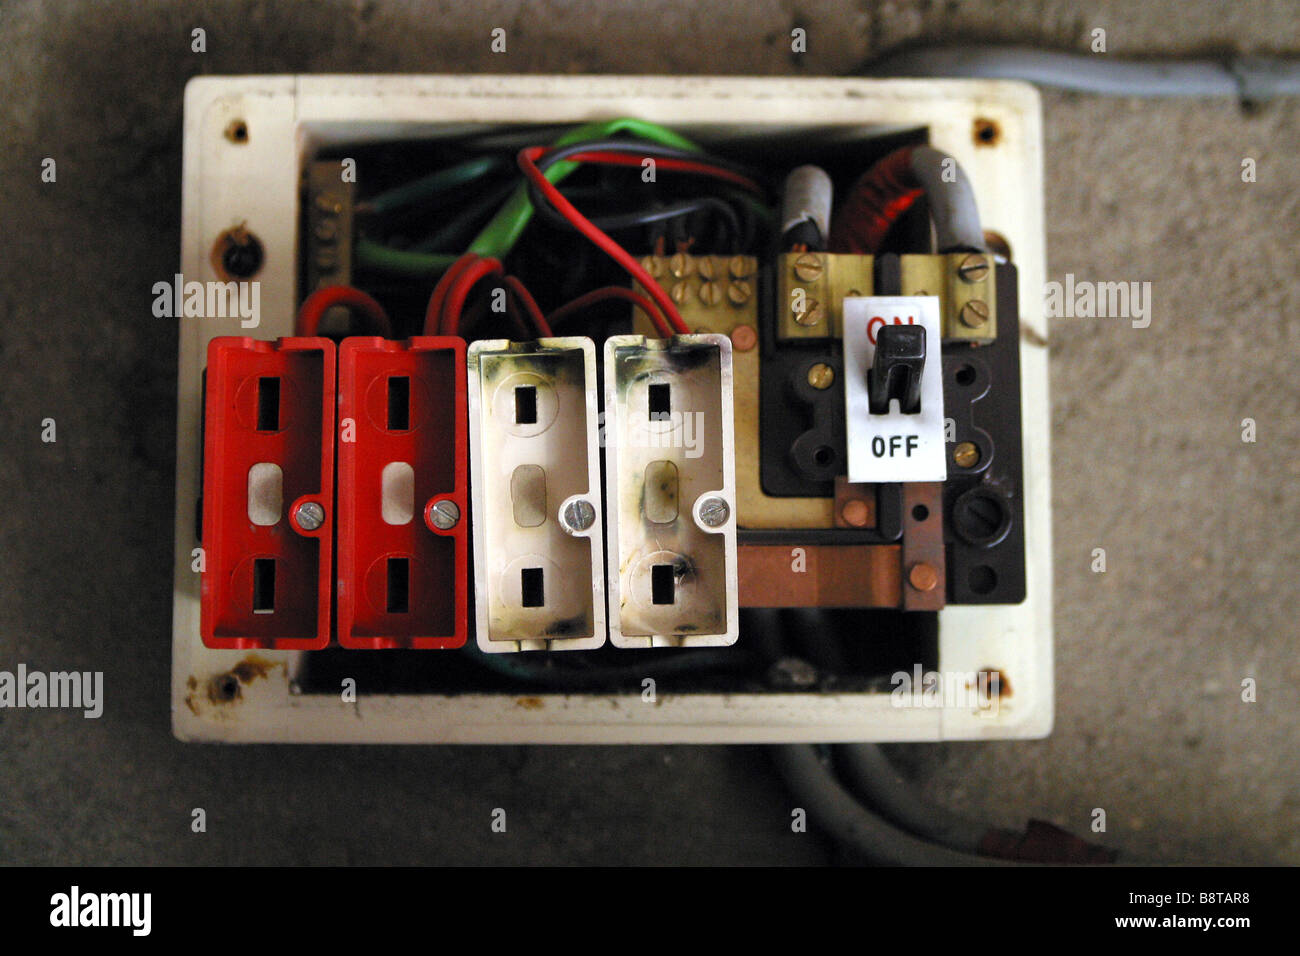 hight resolution of fuses for fuse box house simple wiring diagram schema old screw in fuse boxes replacing old